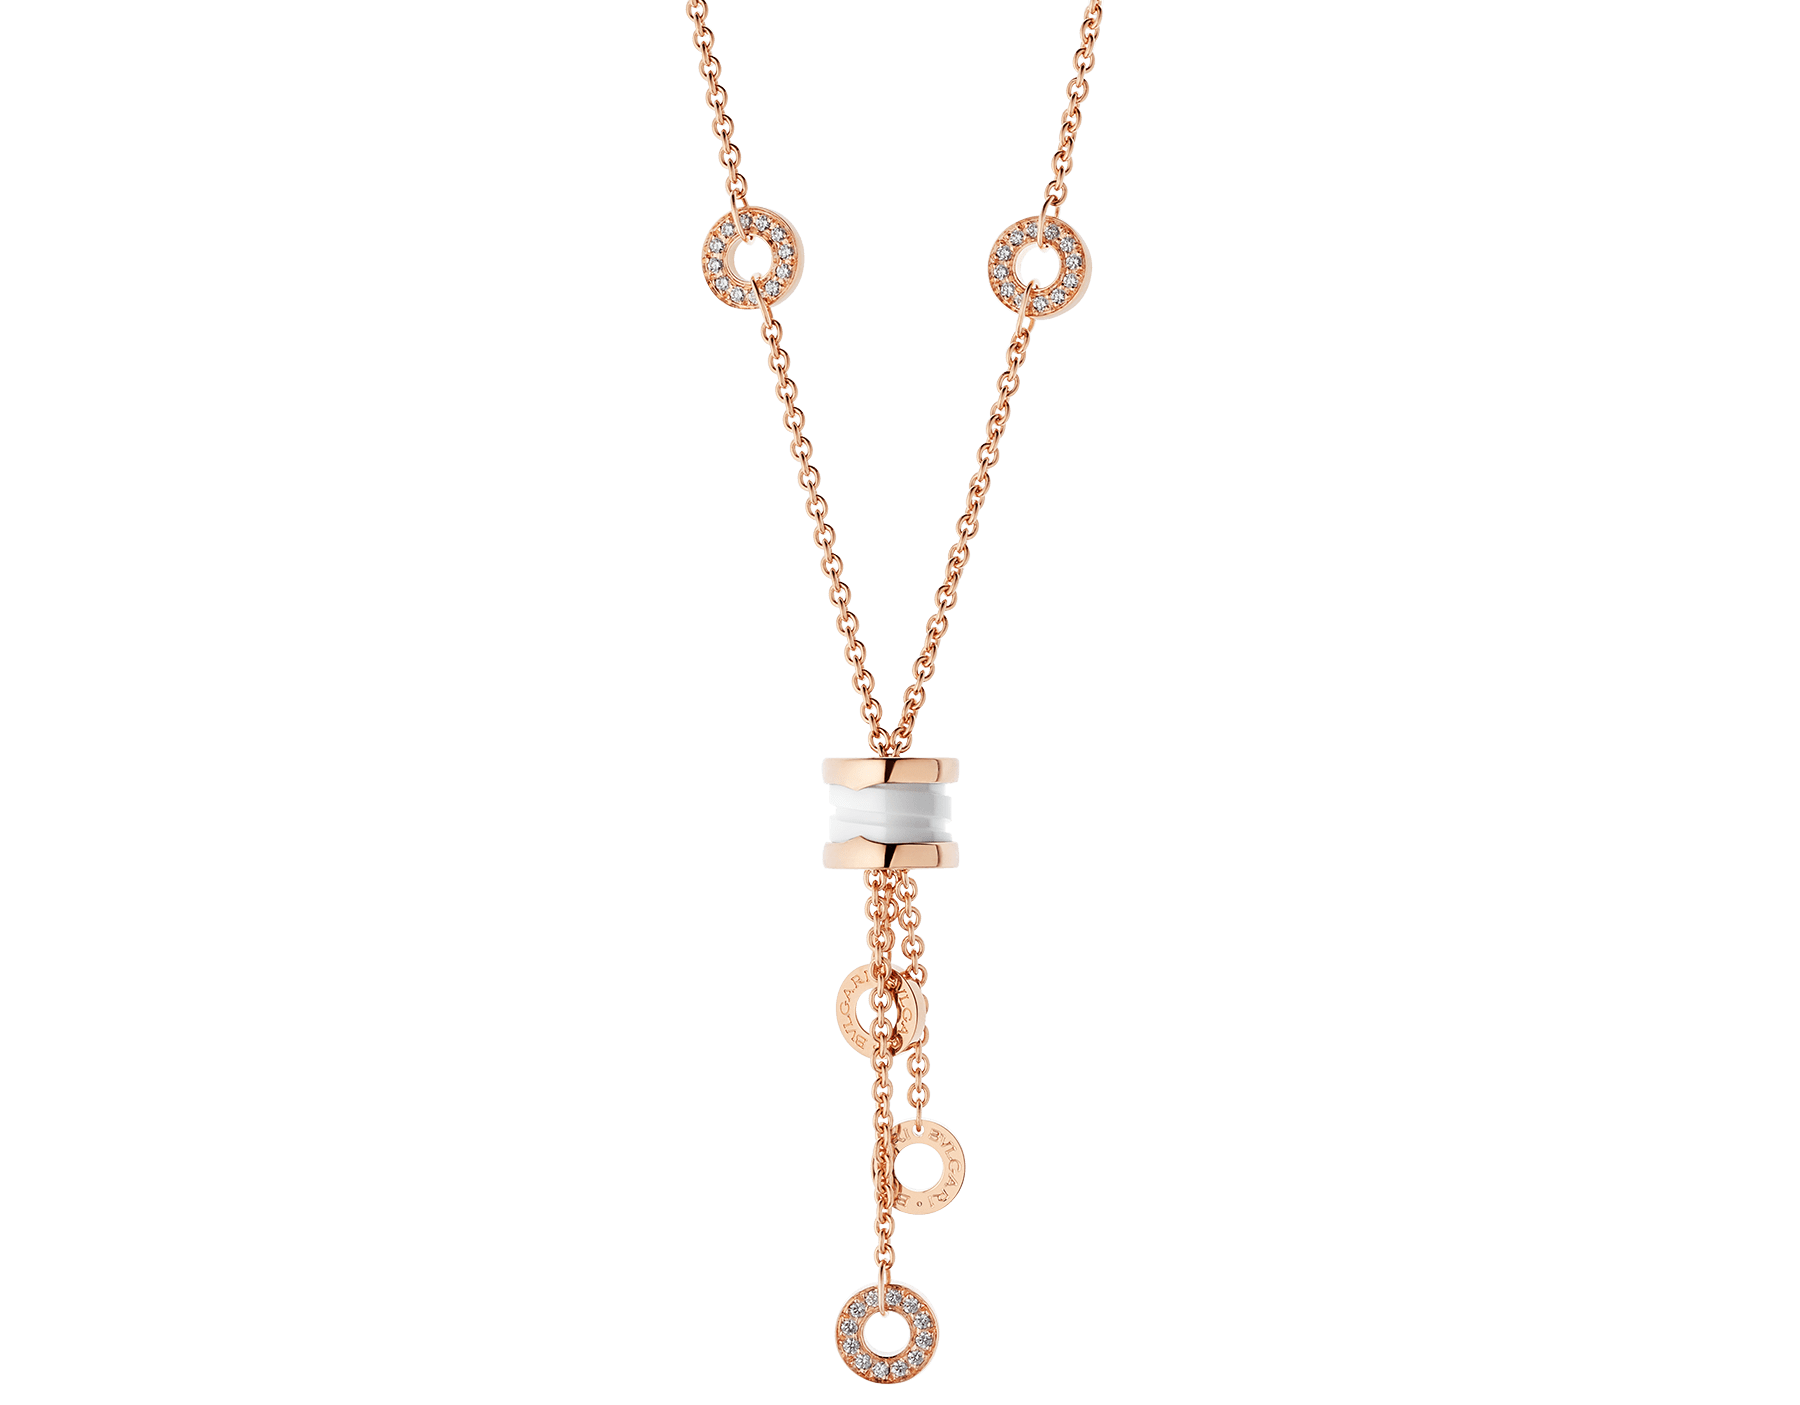 B.zero1 necklace with 18 kt rose gold chain set with pavé diamonds and pendant in 18 kt rose gold and white ceramic. 347577 image 1